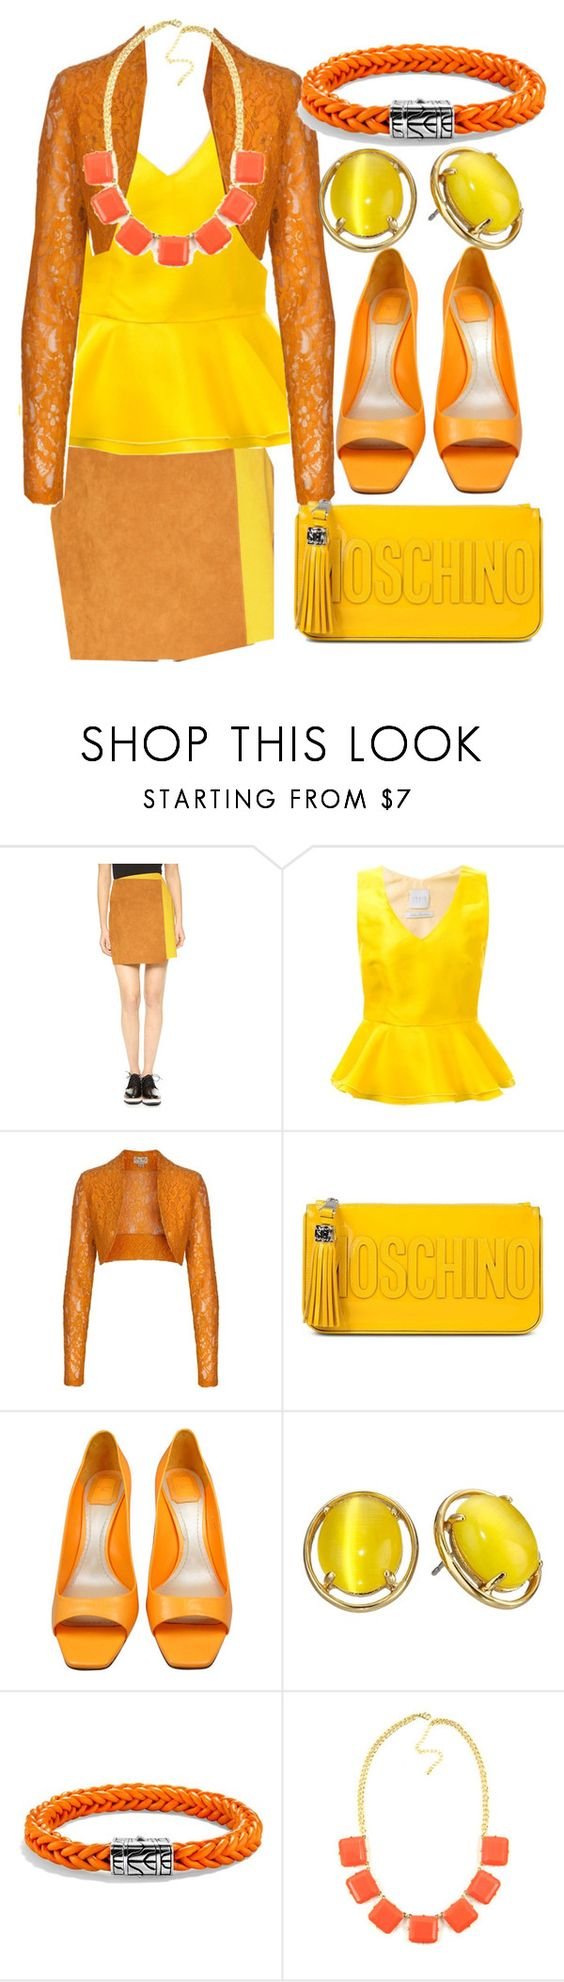 """Color Block 8"" by egordon2 ❤ liked on Polyvore featuring MSGM, Ingie Paris, Moschino, Christian Dior, Kate Spade, John Hardy, yellow, orange and colorblock"